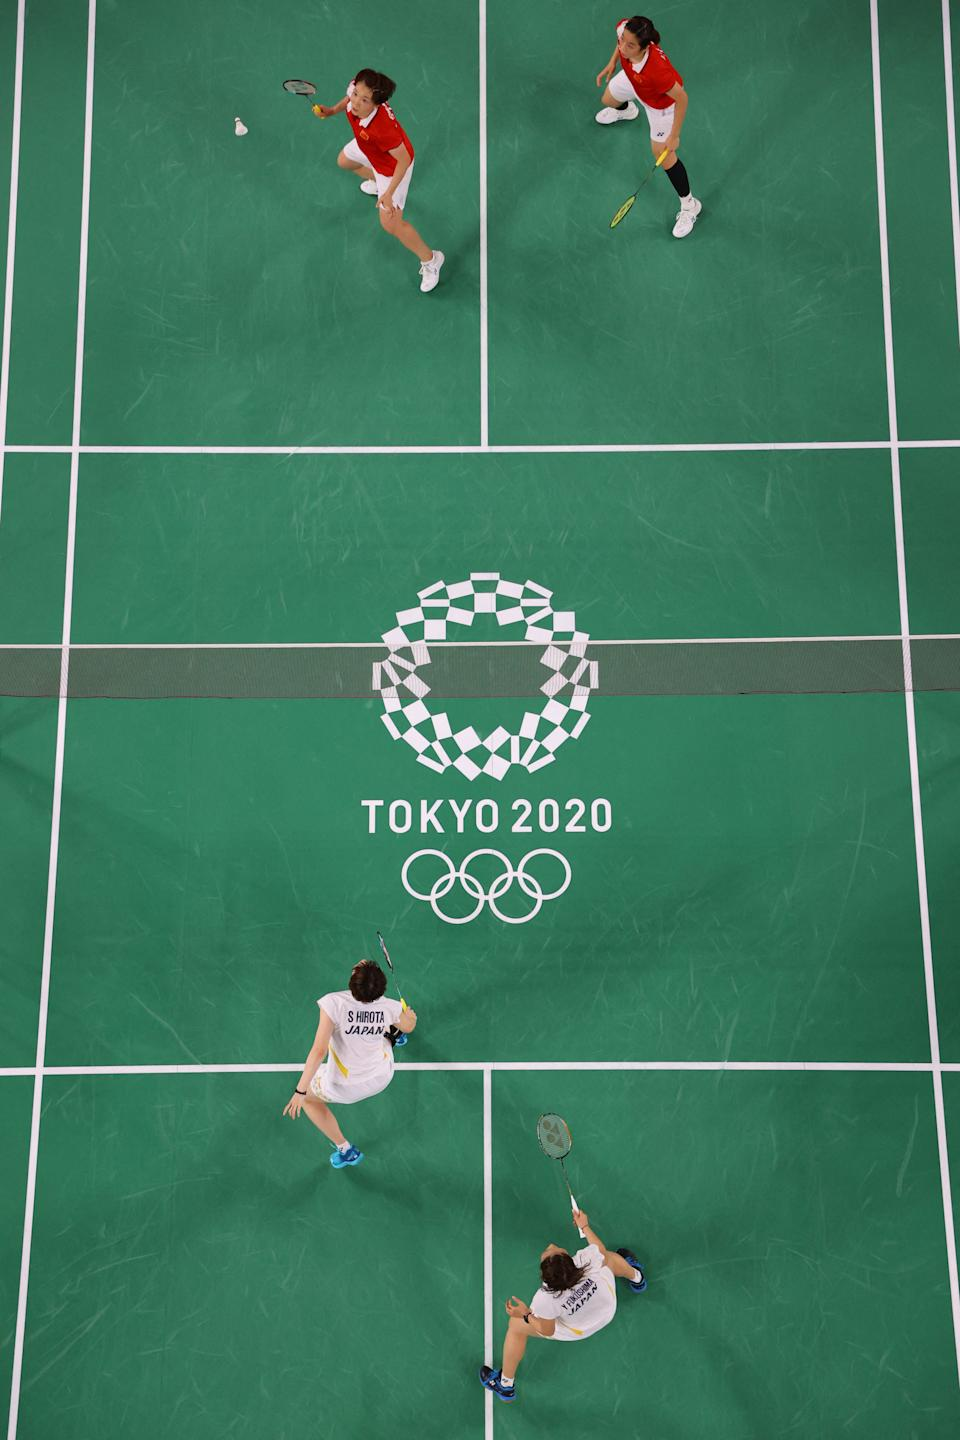 <p>China's Chen Qingchen (top L) hits a shot next to China's Jia Yifan in their women's doubles badminton quarter final match against Japan's Yuki Fukushima and Japan's Sayaka Hirota during the Tokyo 2020 Olympic Games at the Musashino Forest Sports Plaza in Tokyo on July 29, 2021. (Photo by LINTAO ZHANG / POOL / AFP) (Photo by LINTAO ZHANG/POOL/AFP via Getty Images)</p>